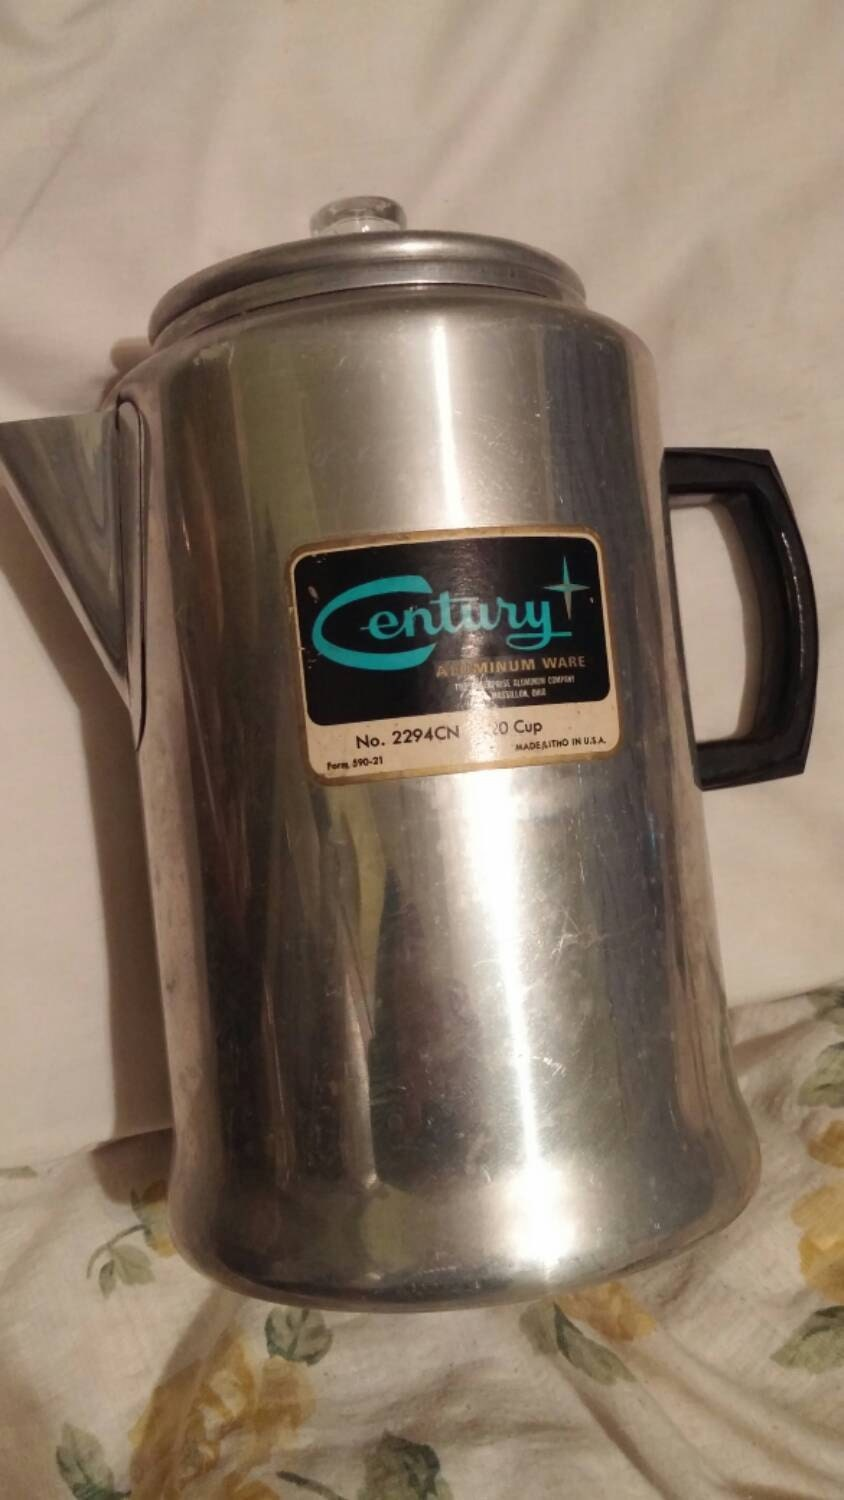 Coffee Maker 20 Cup : Century 20 Cup Coffee Maker. Campstove. Label intact. Made in